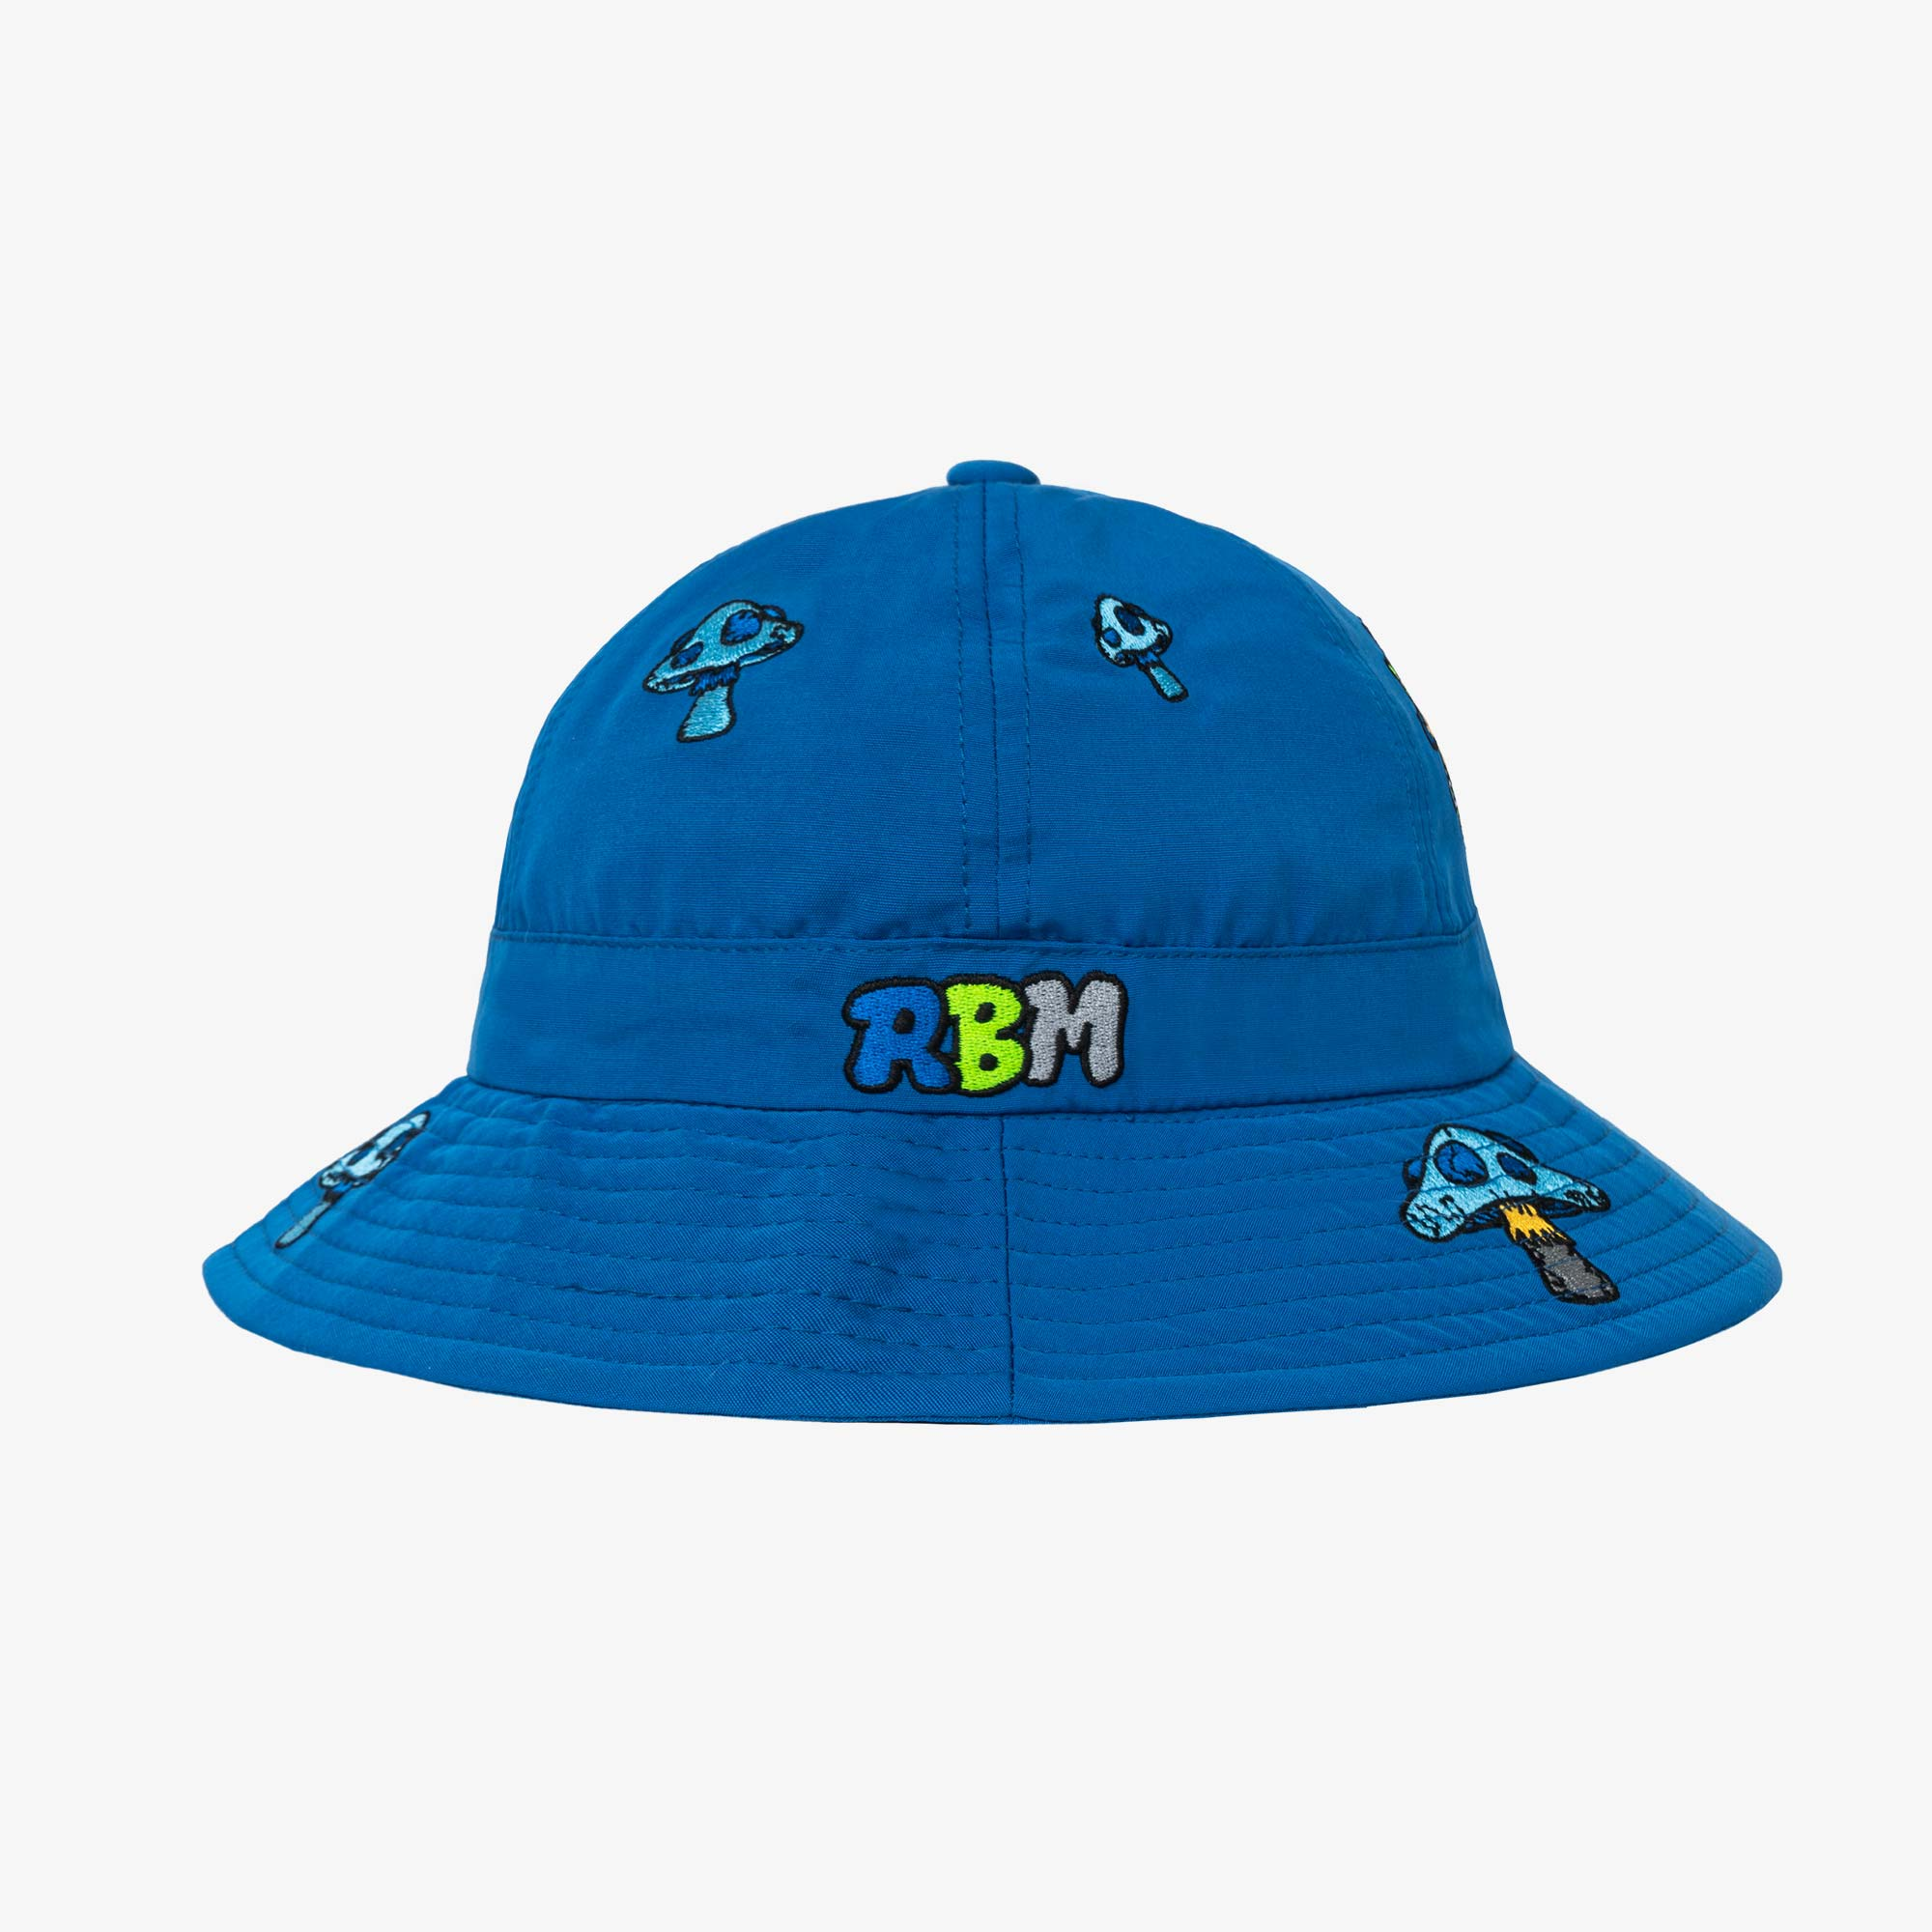 Real Bad Man Delic Embroidered Bell Bucket Hat - Blue 2